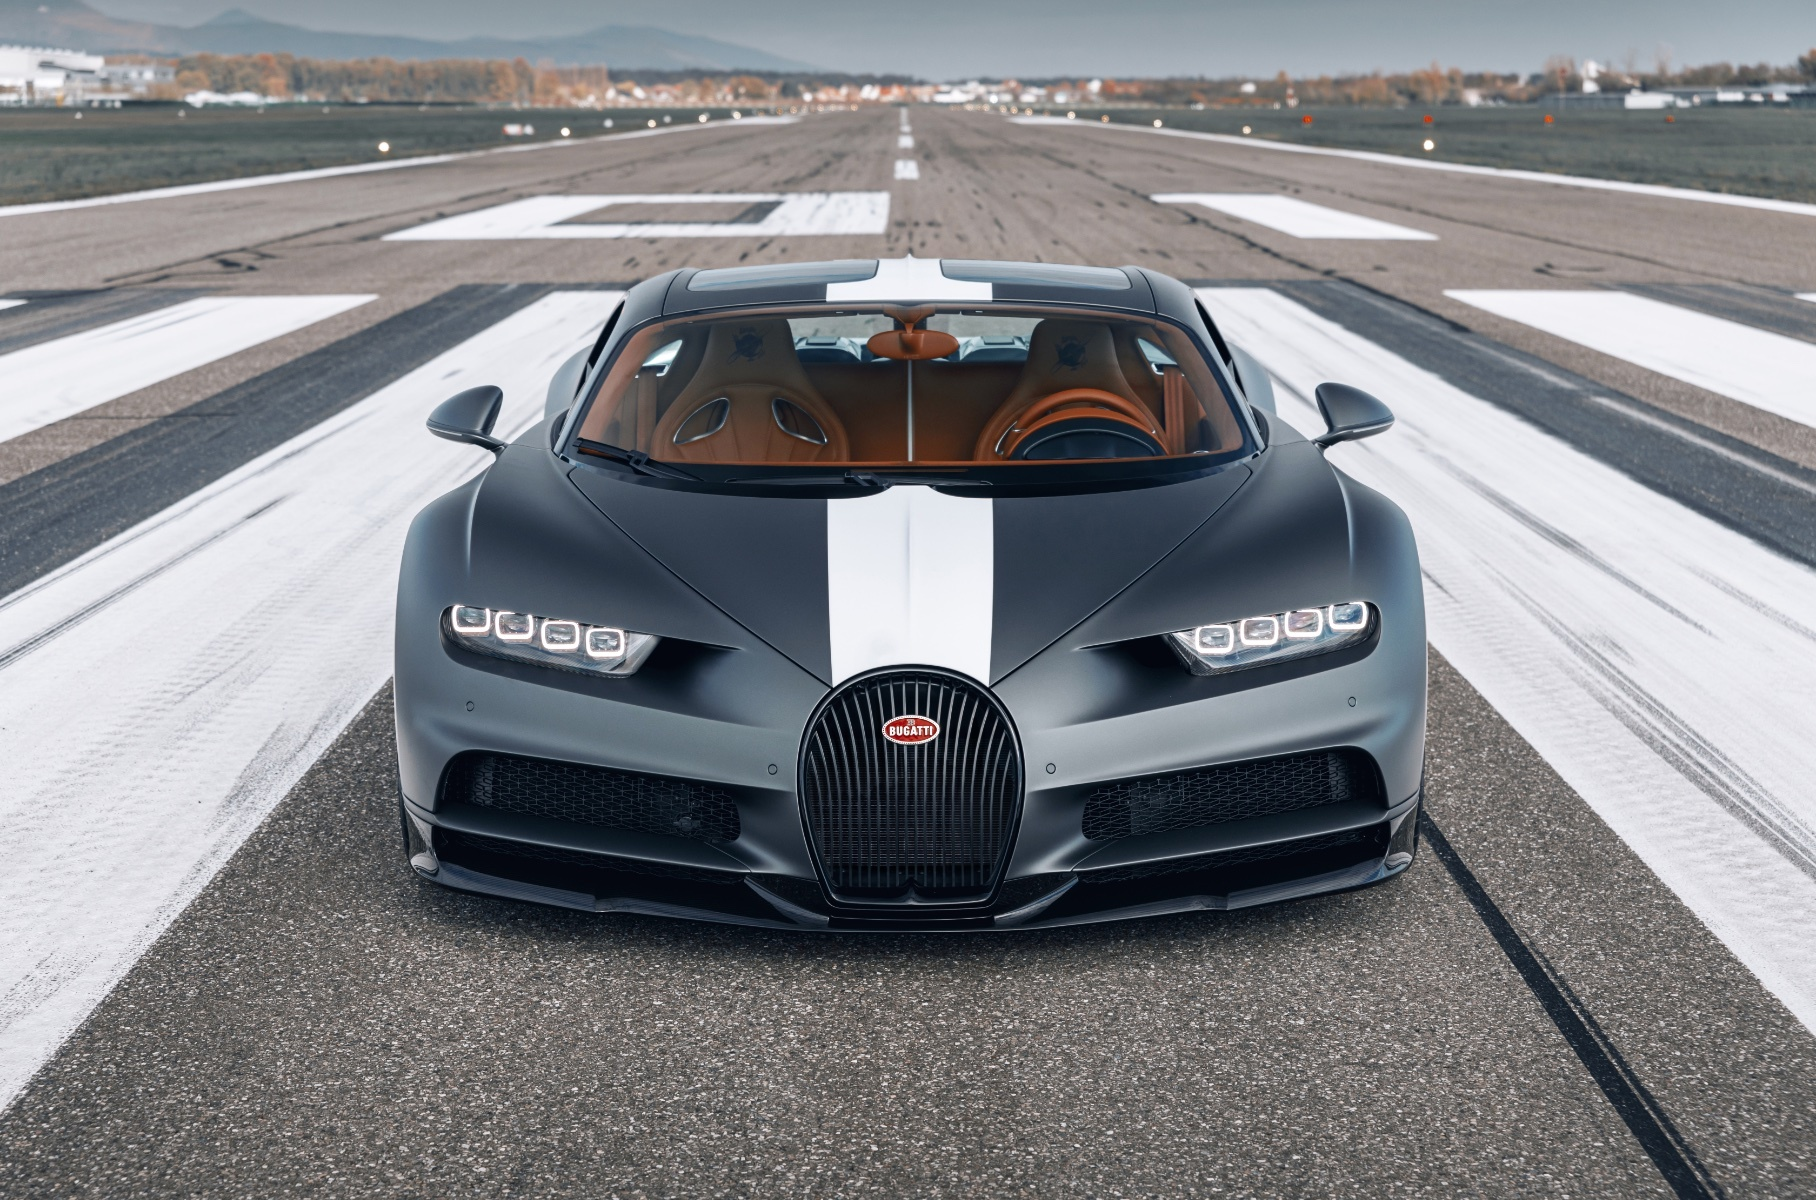 Bugatti's latest limited Chiron edition pays homage to the famous 20th century airplane pilots, coming out in a run of 20 units priced at €2,880,000 each.